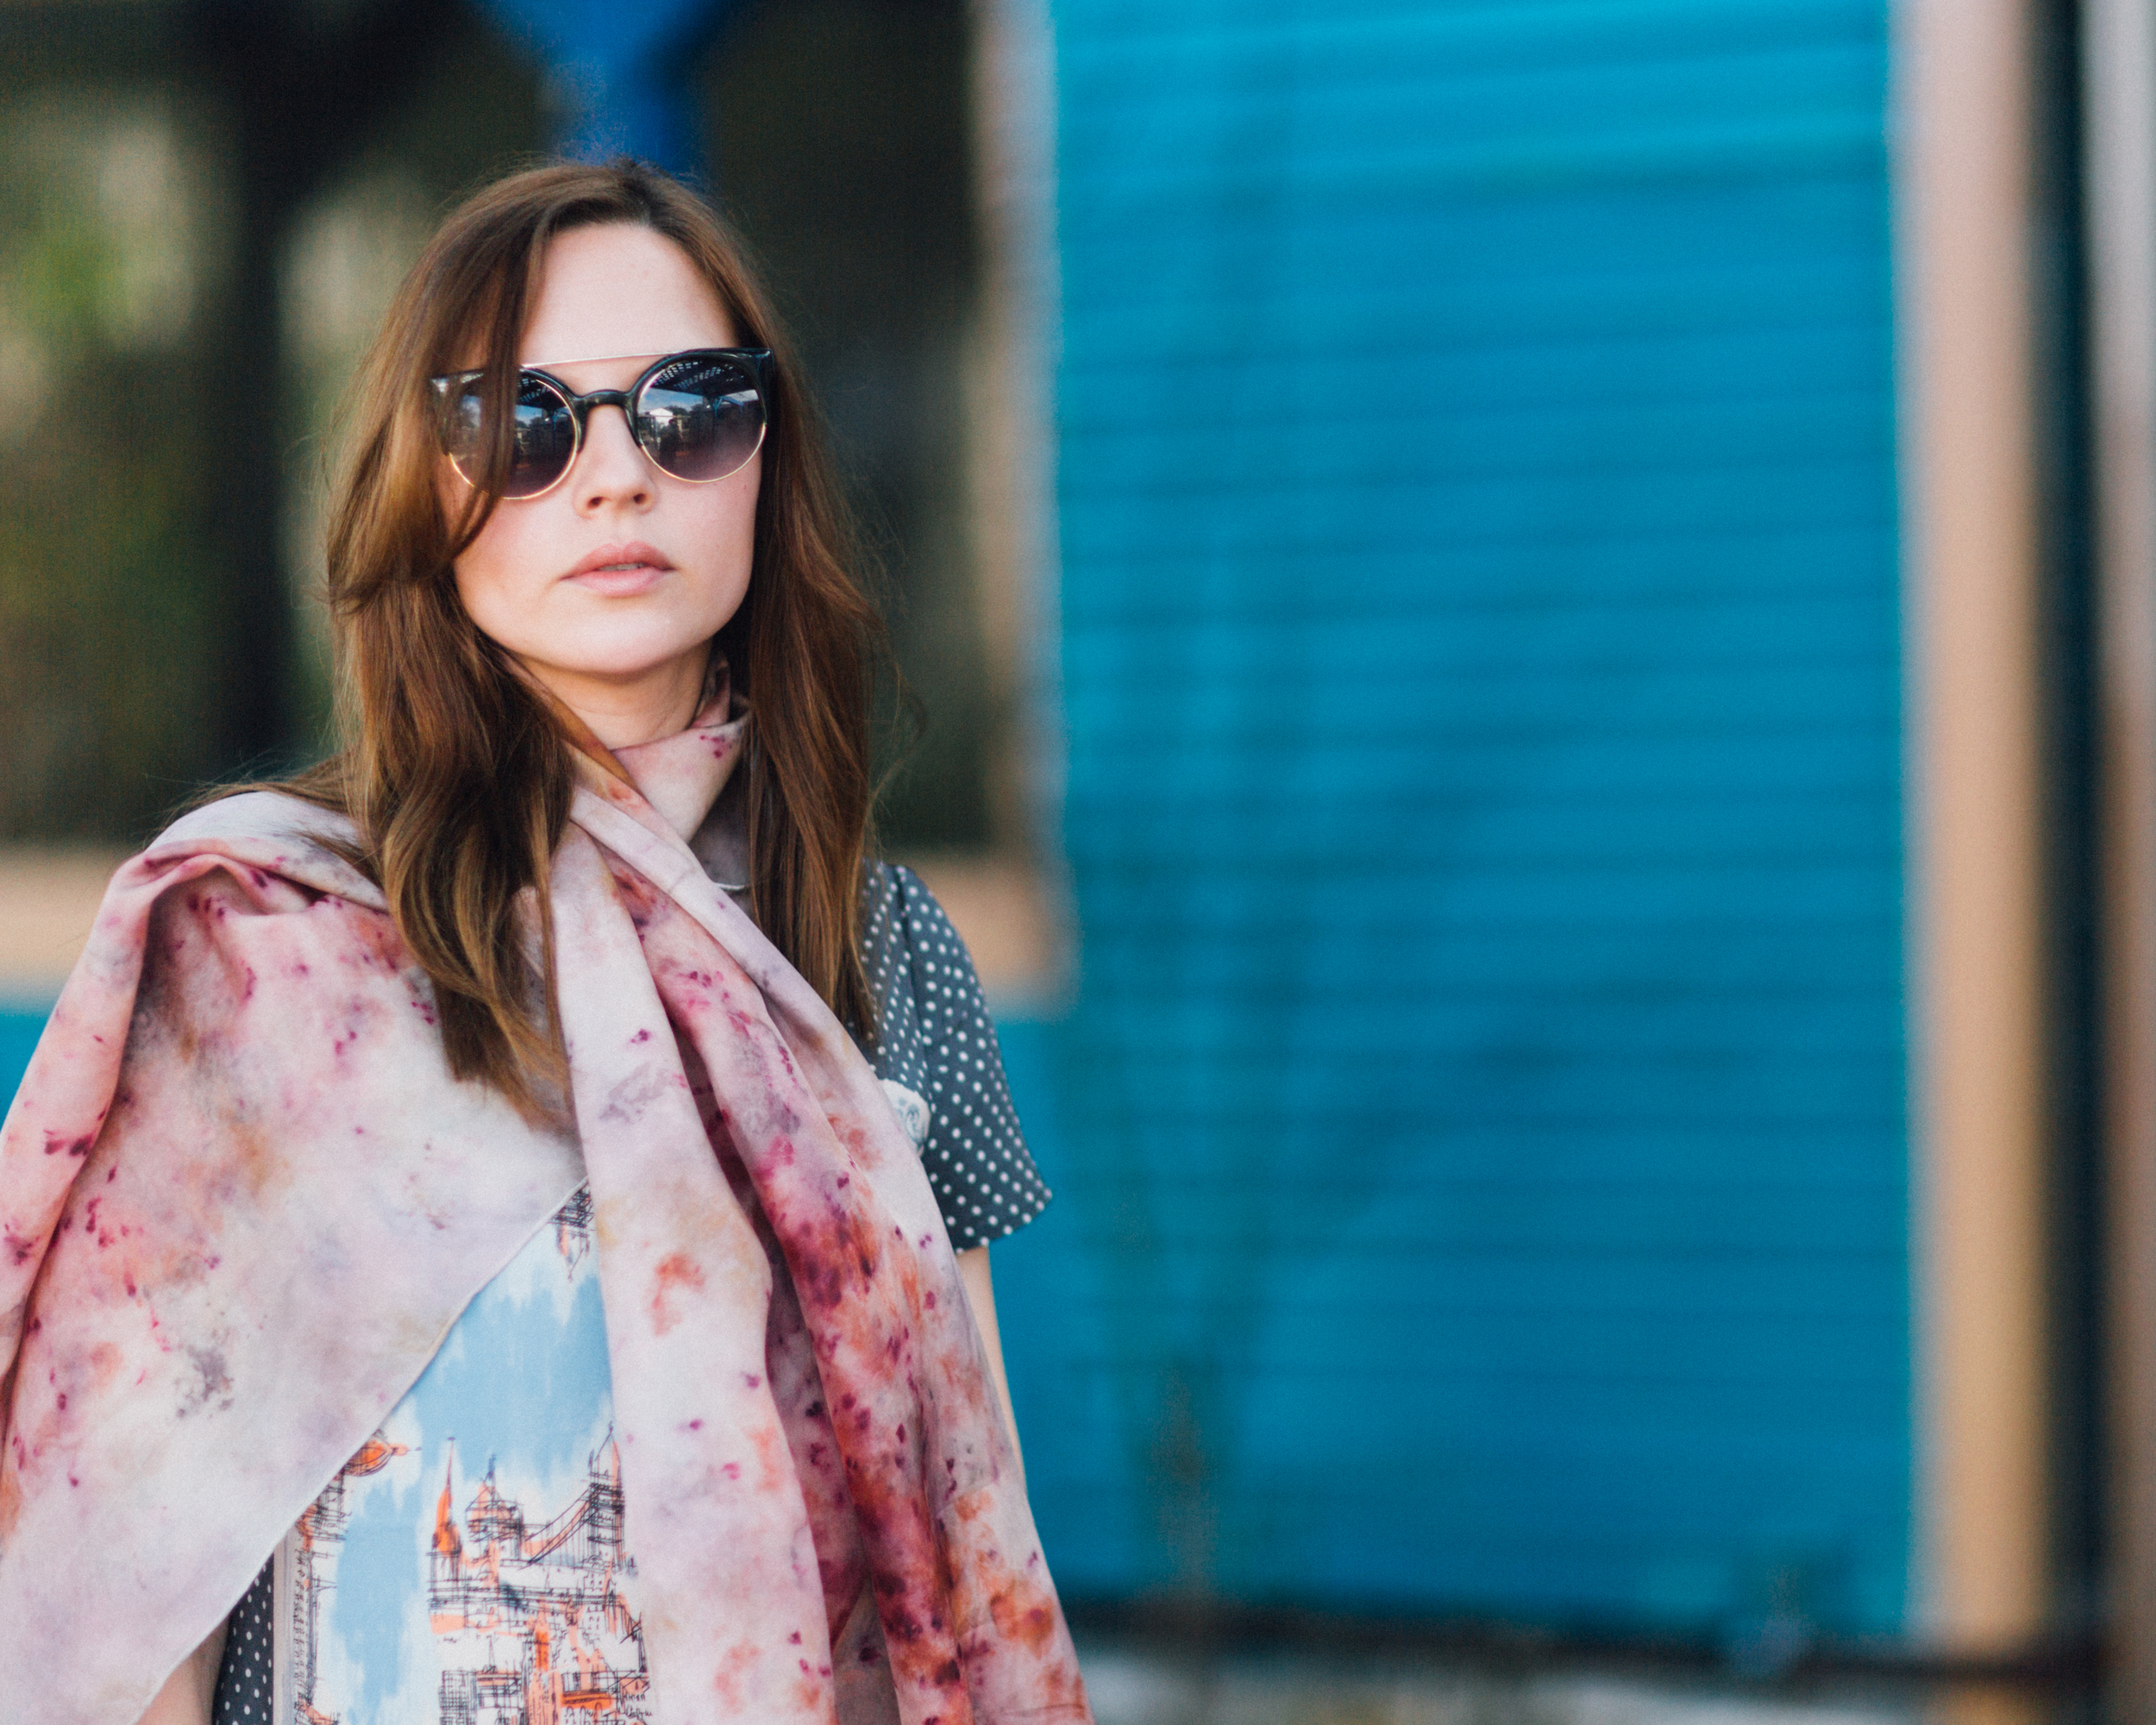 Anthropologie Austin Lifestyle Fashion Photography by The Finches